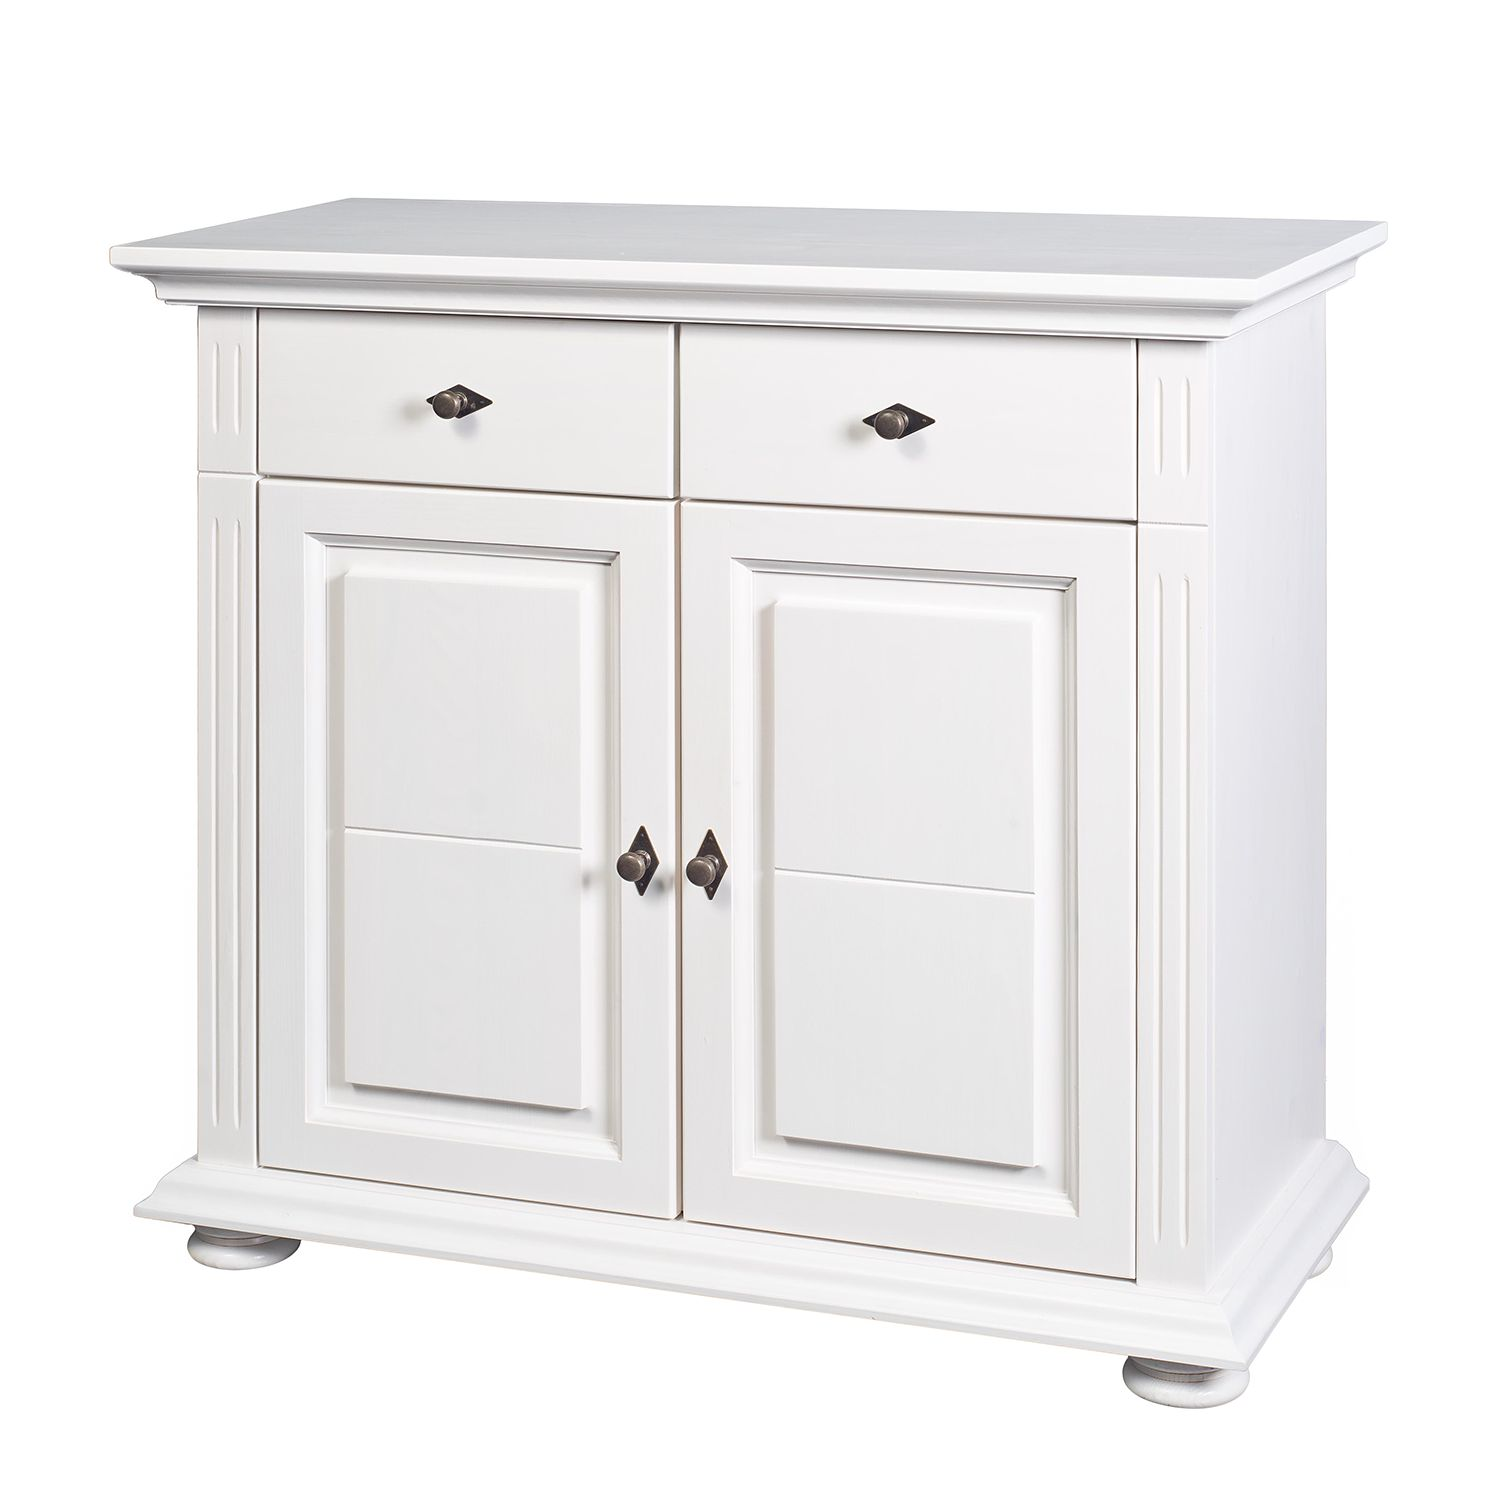 Commode Flinn III - Epicéa à noeuds massif Blanc, Ridgevalley